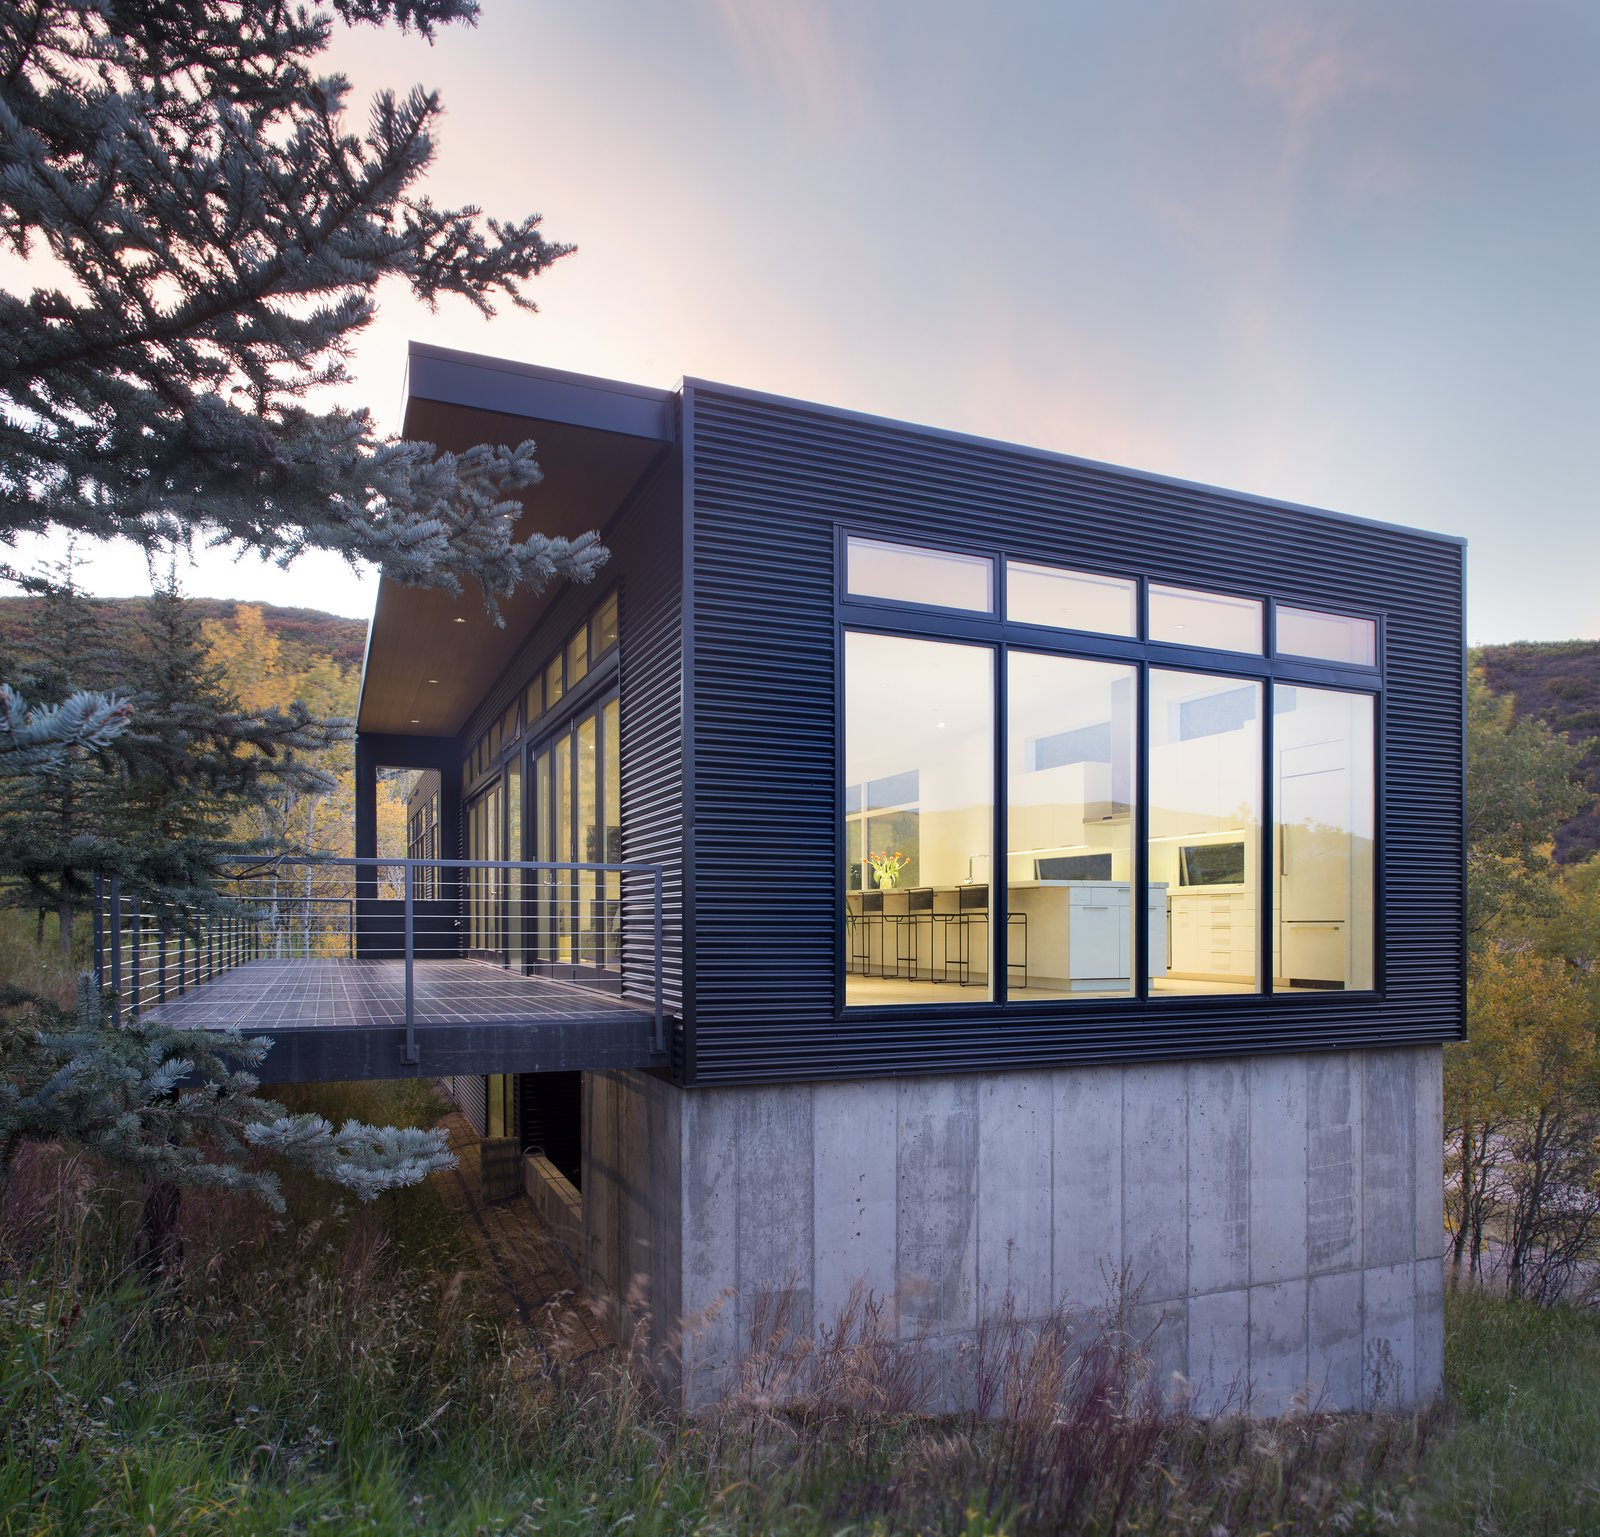 Exterior, House, Flat, Cabin, Metal, and Concrete  Exterior Metal Cabin Concrete House Photos from Black Magic